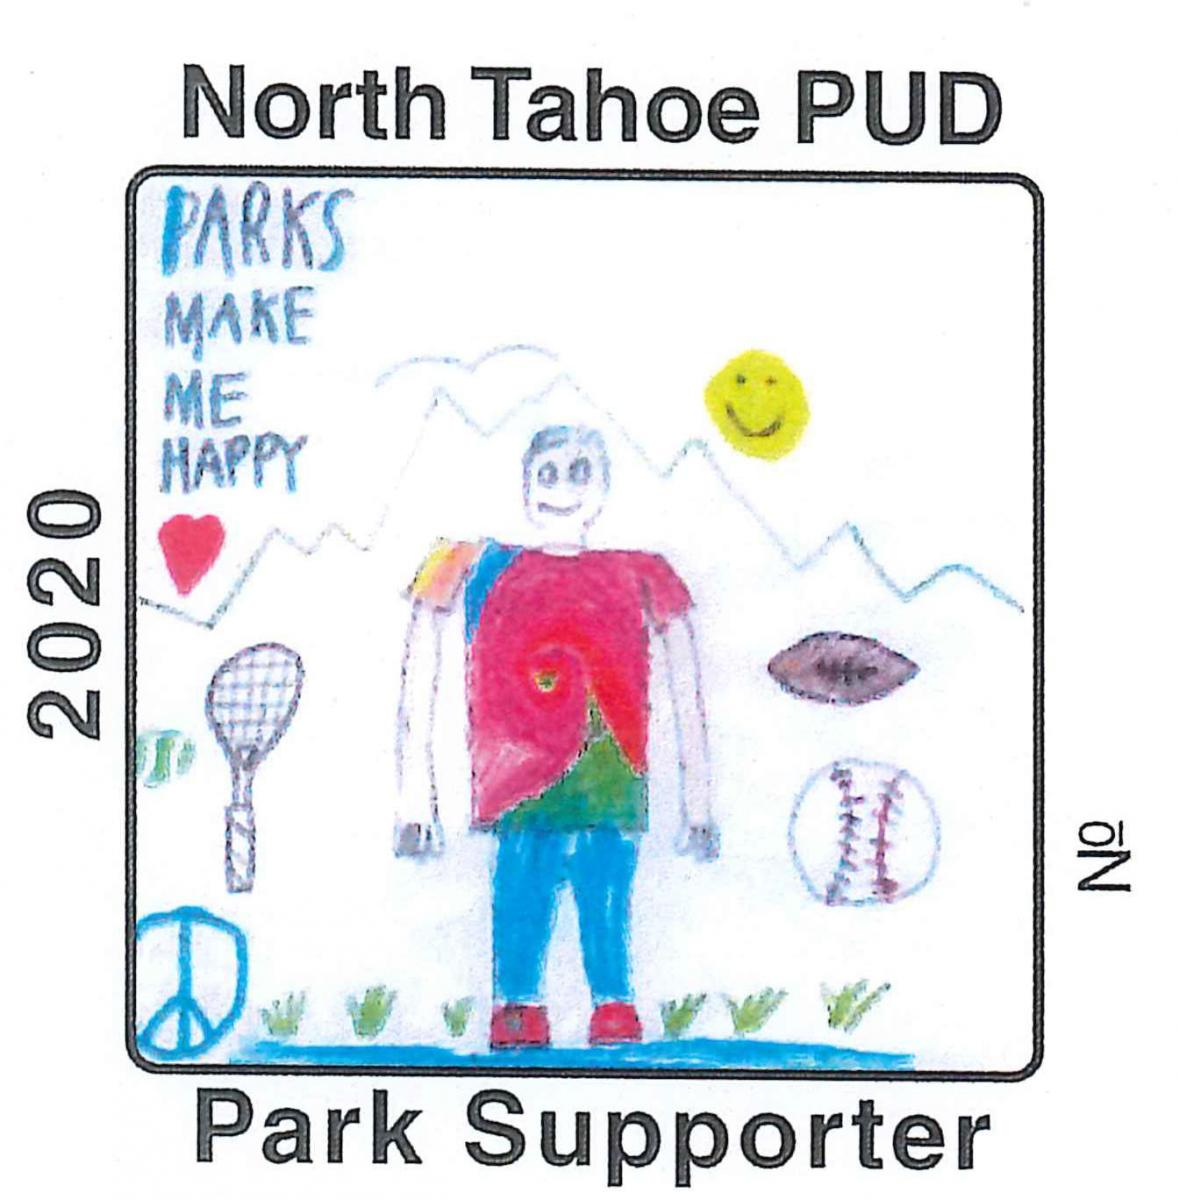 North Tahoe PUD Park Supporter sticker